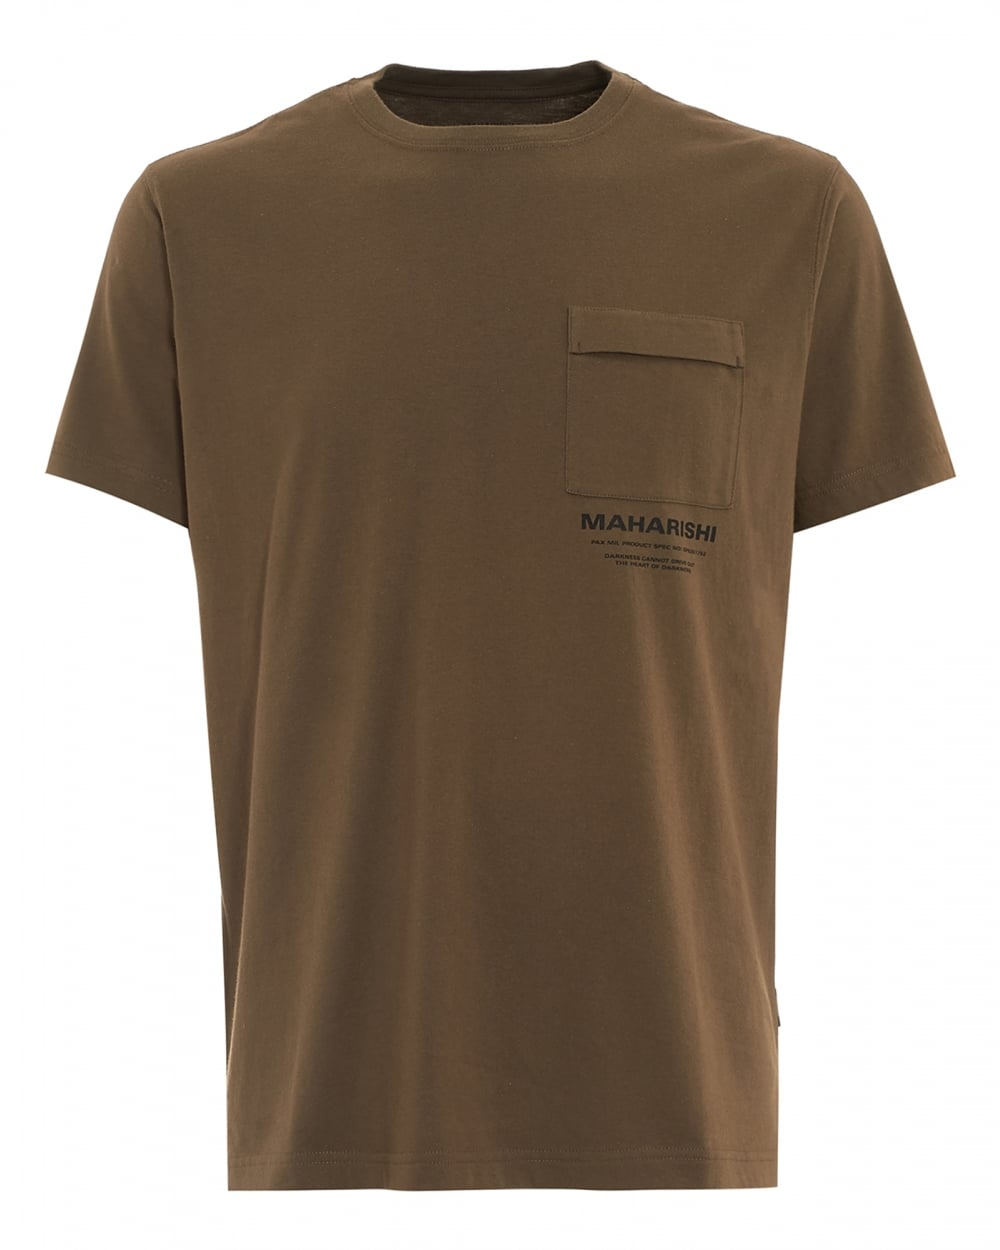 Well-liked Maharishi Mens T-Shirt, Chest Pocket Logo Olive Green Tee NS08